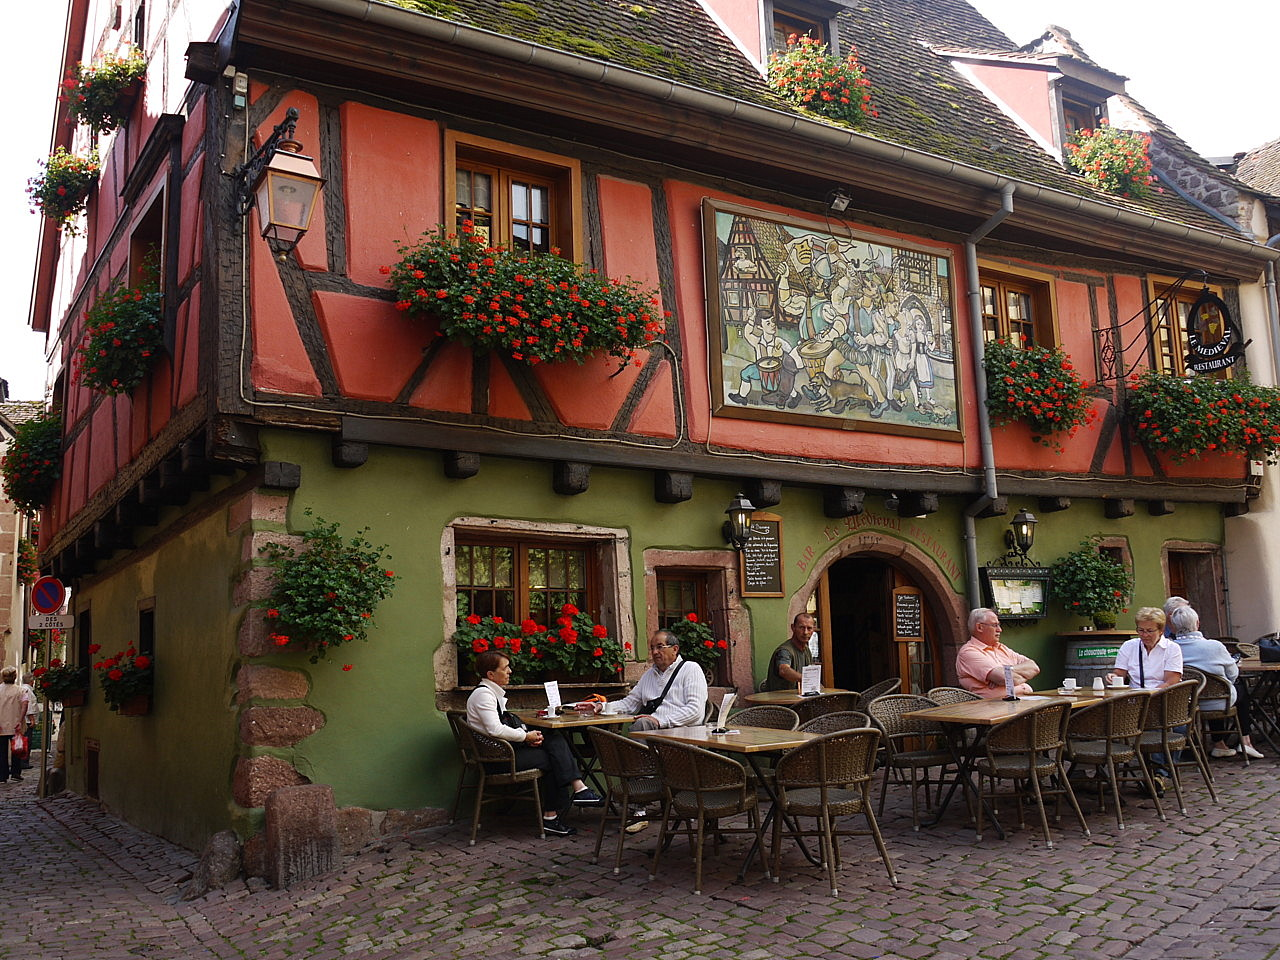 Riquewihr travel photo Brodyaga.com image gallery: France, A